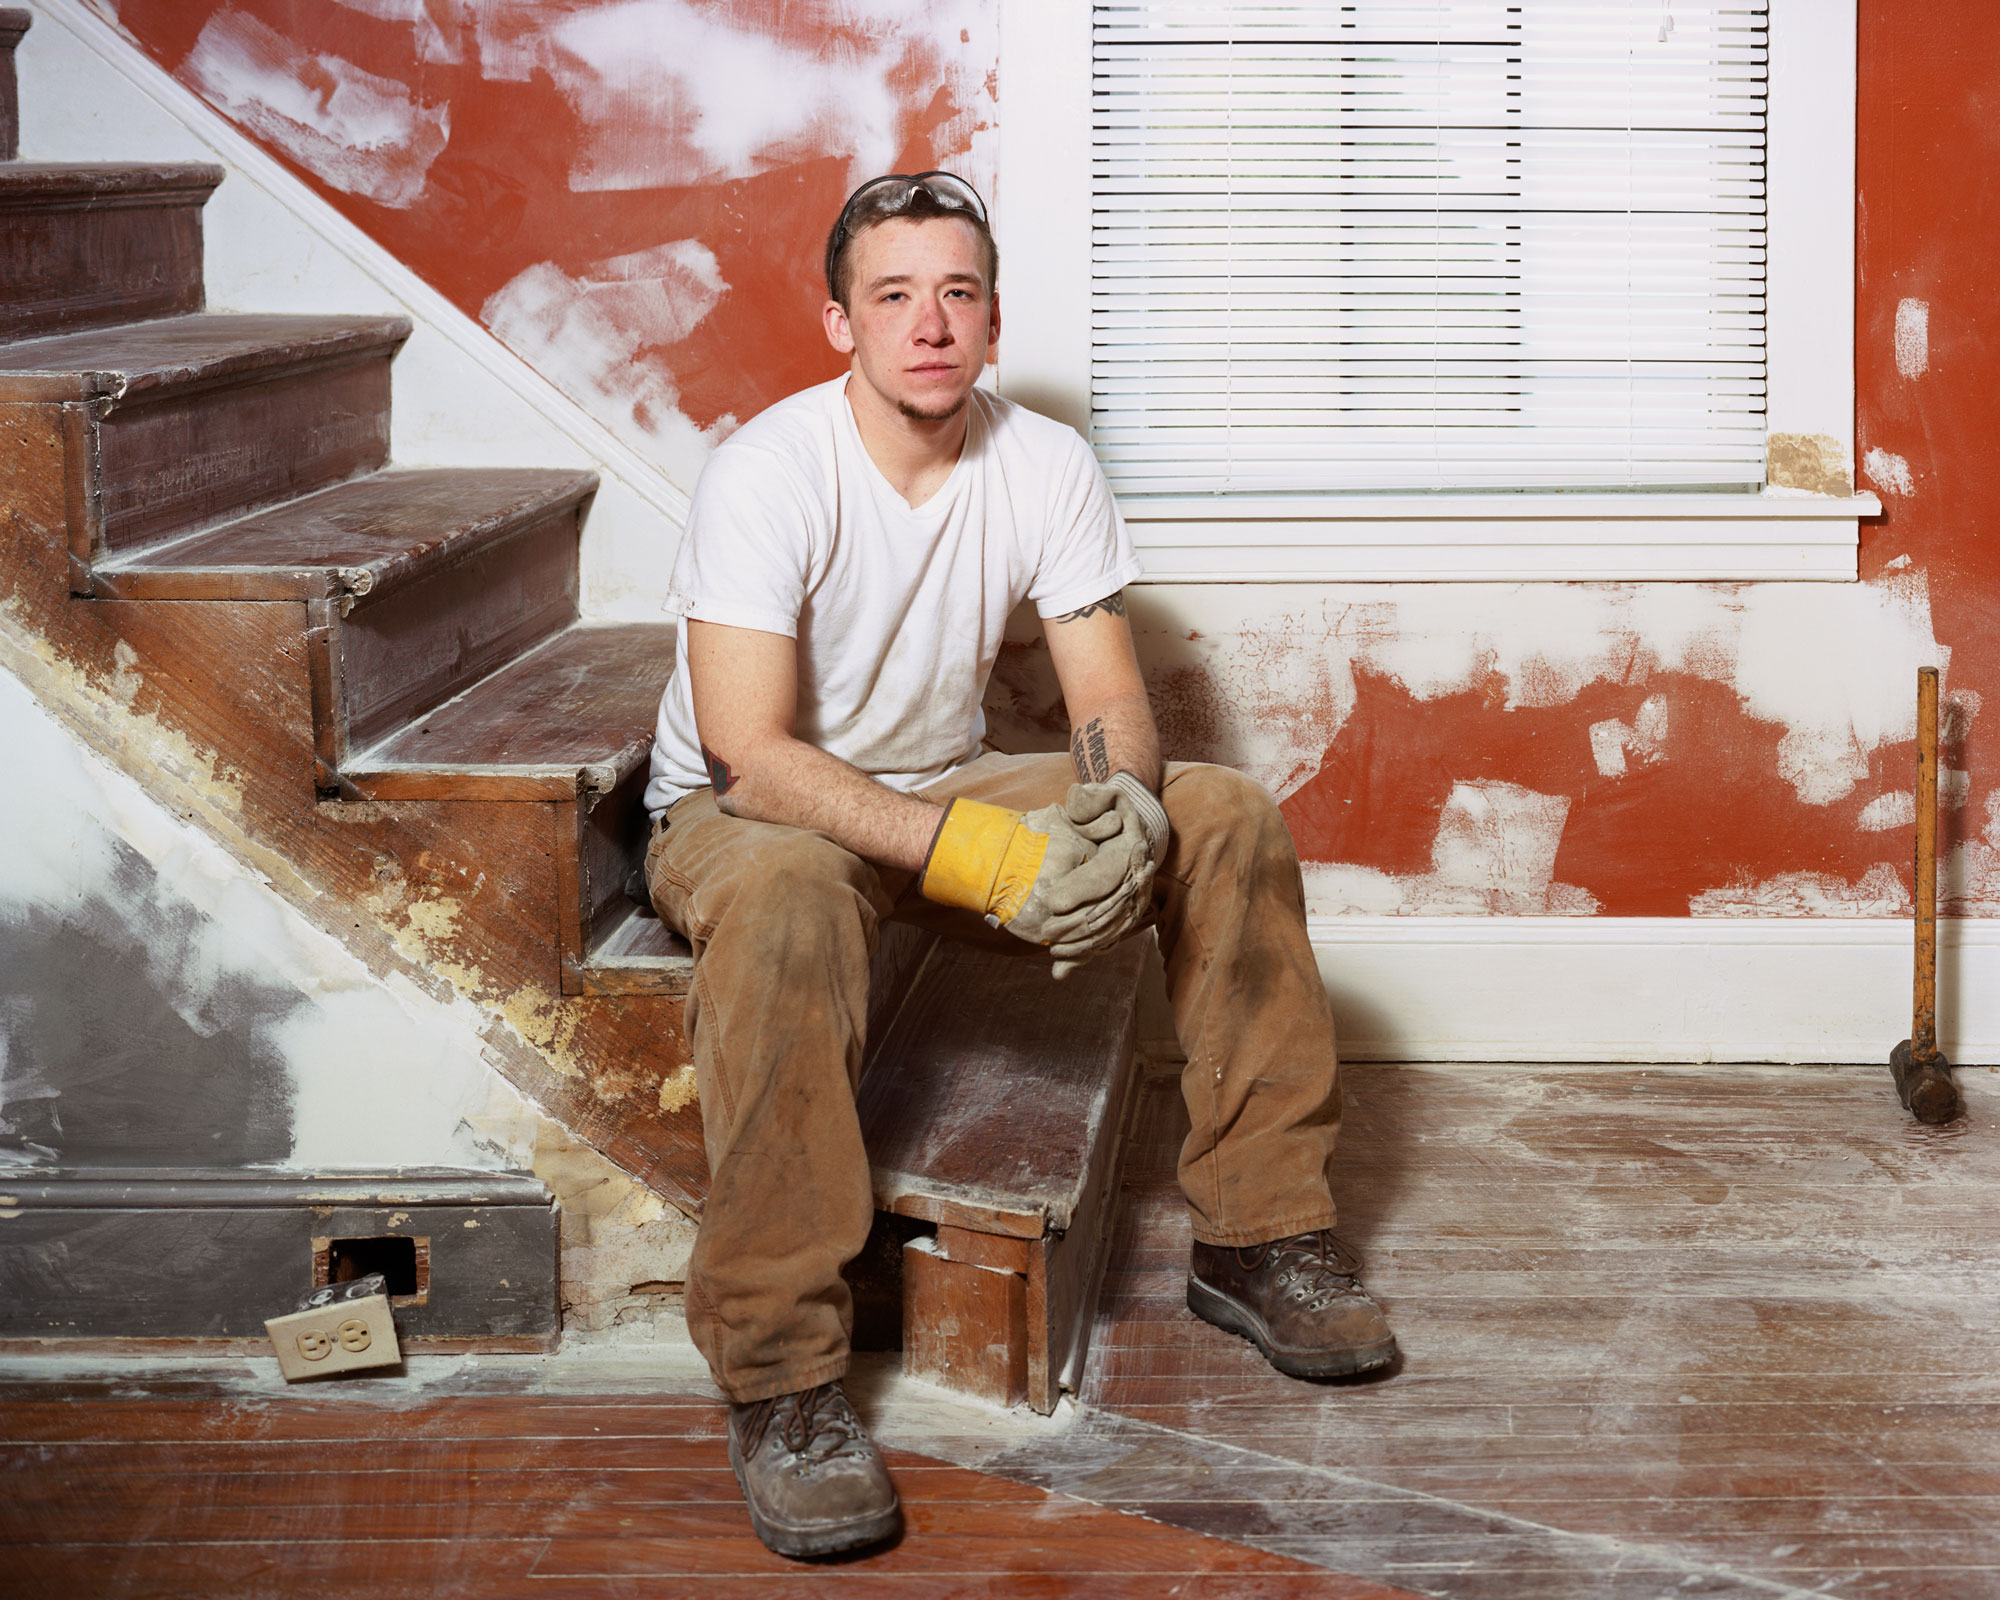 A construction worker sits on unfinished stairs.